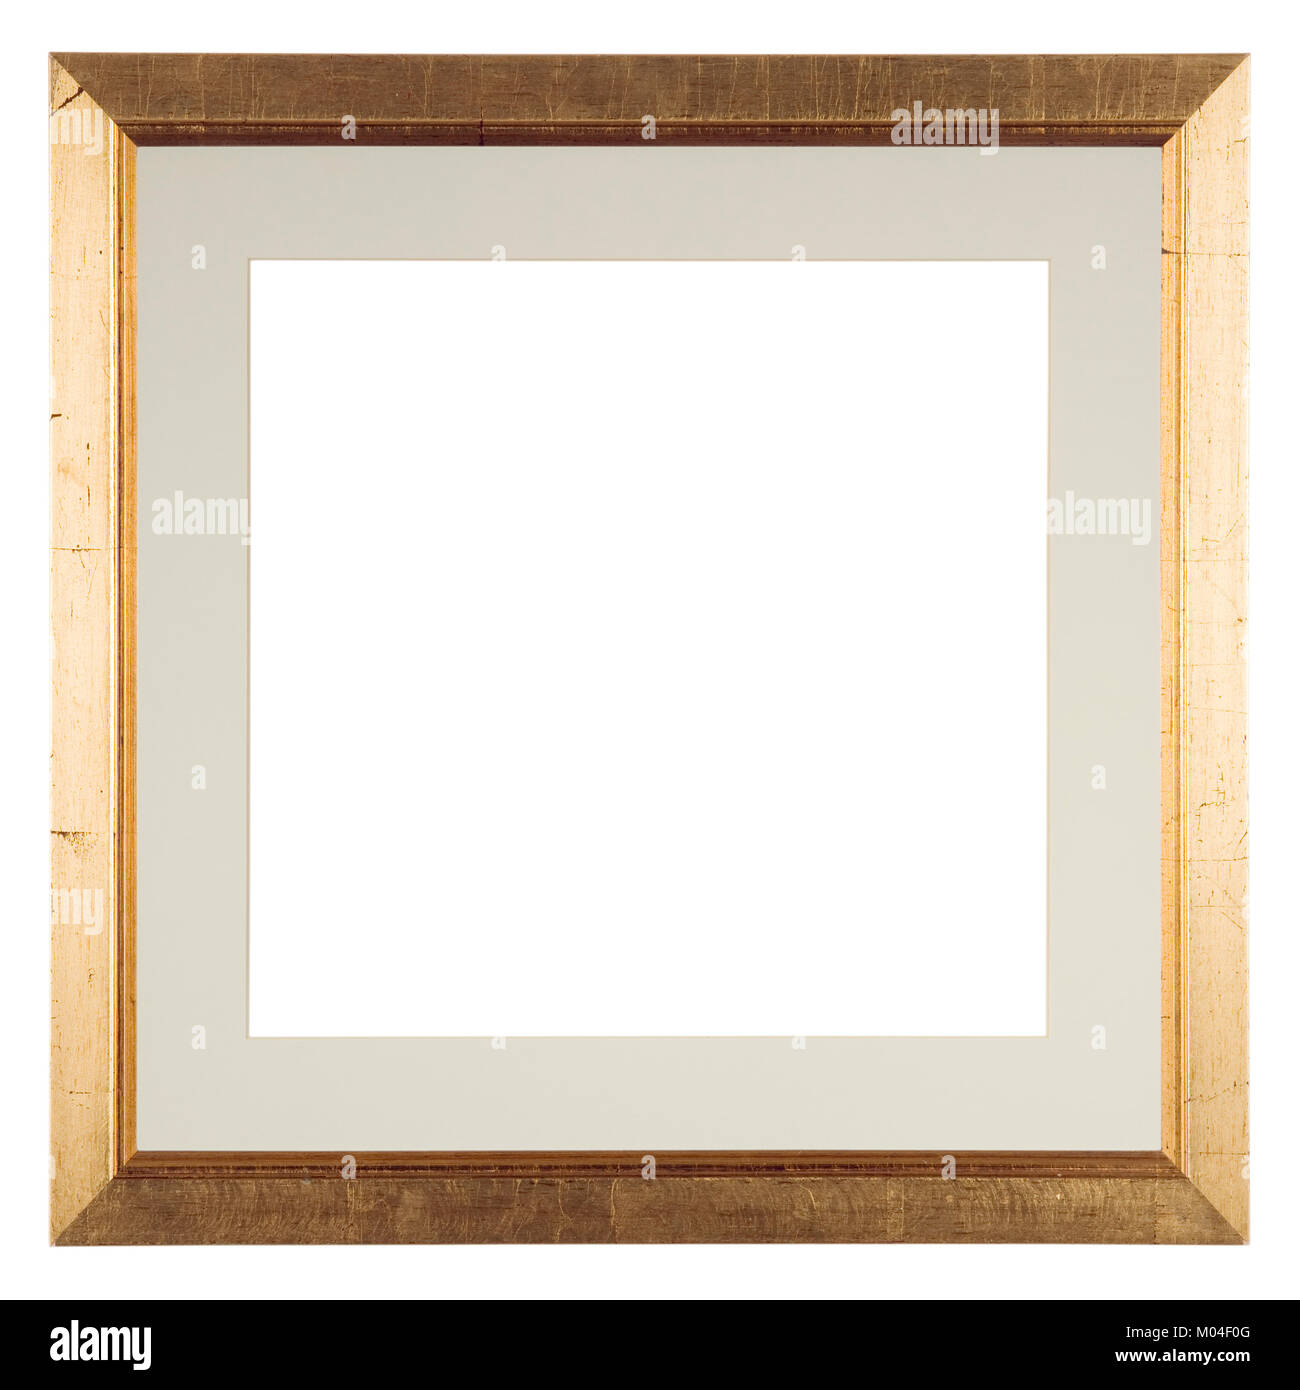 Square Gold Frame Cut Out Stock Photos & Square Gold Frame Cut Out ...